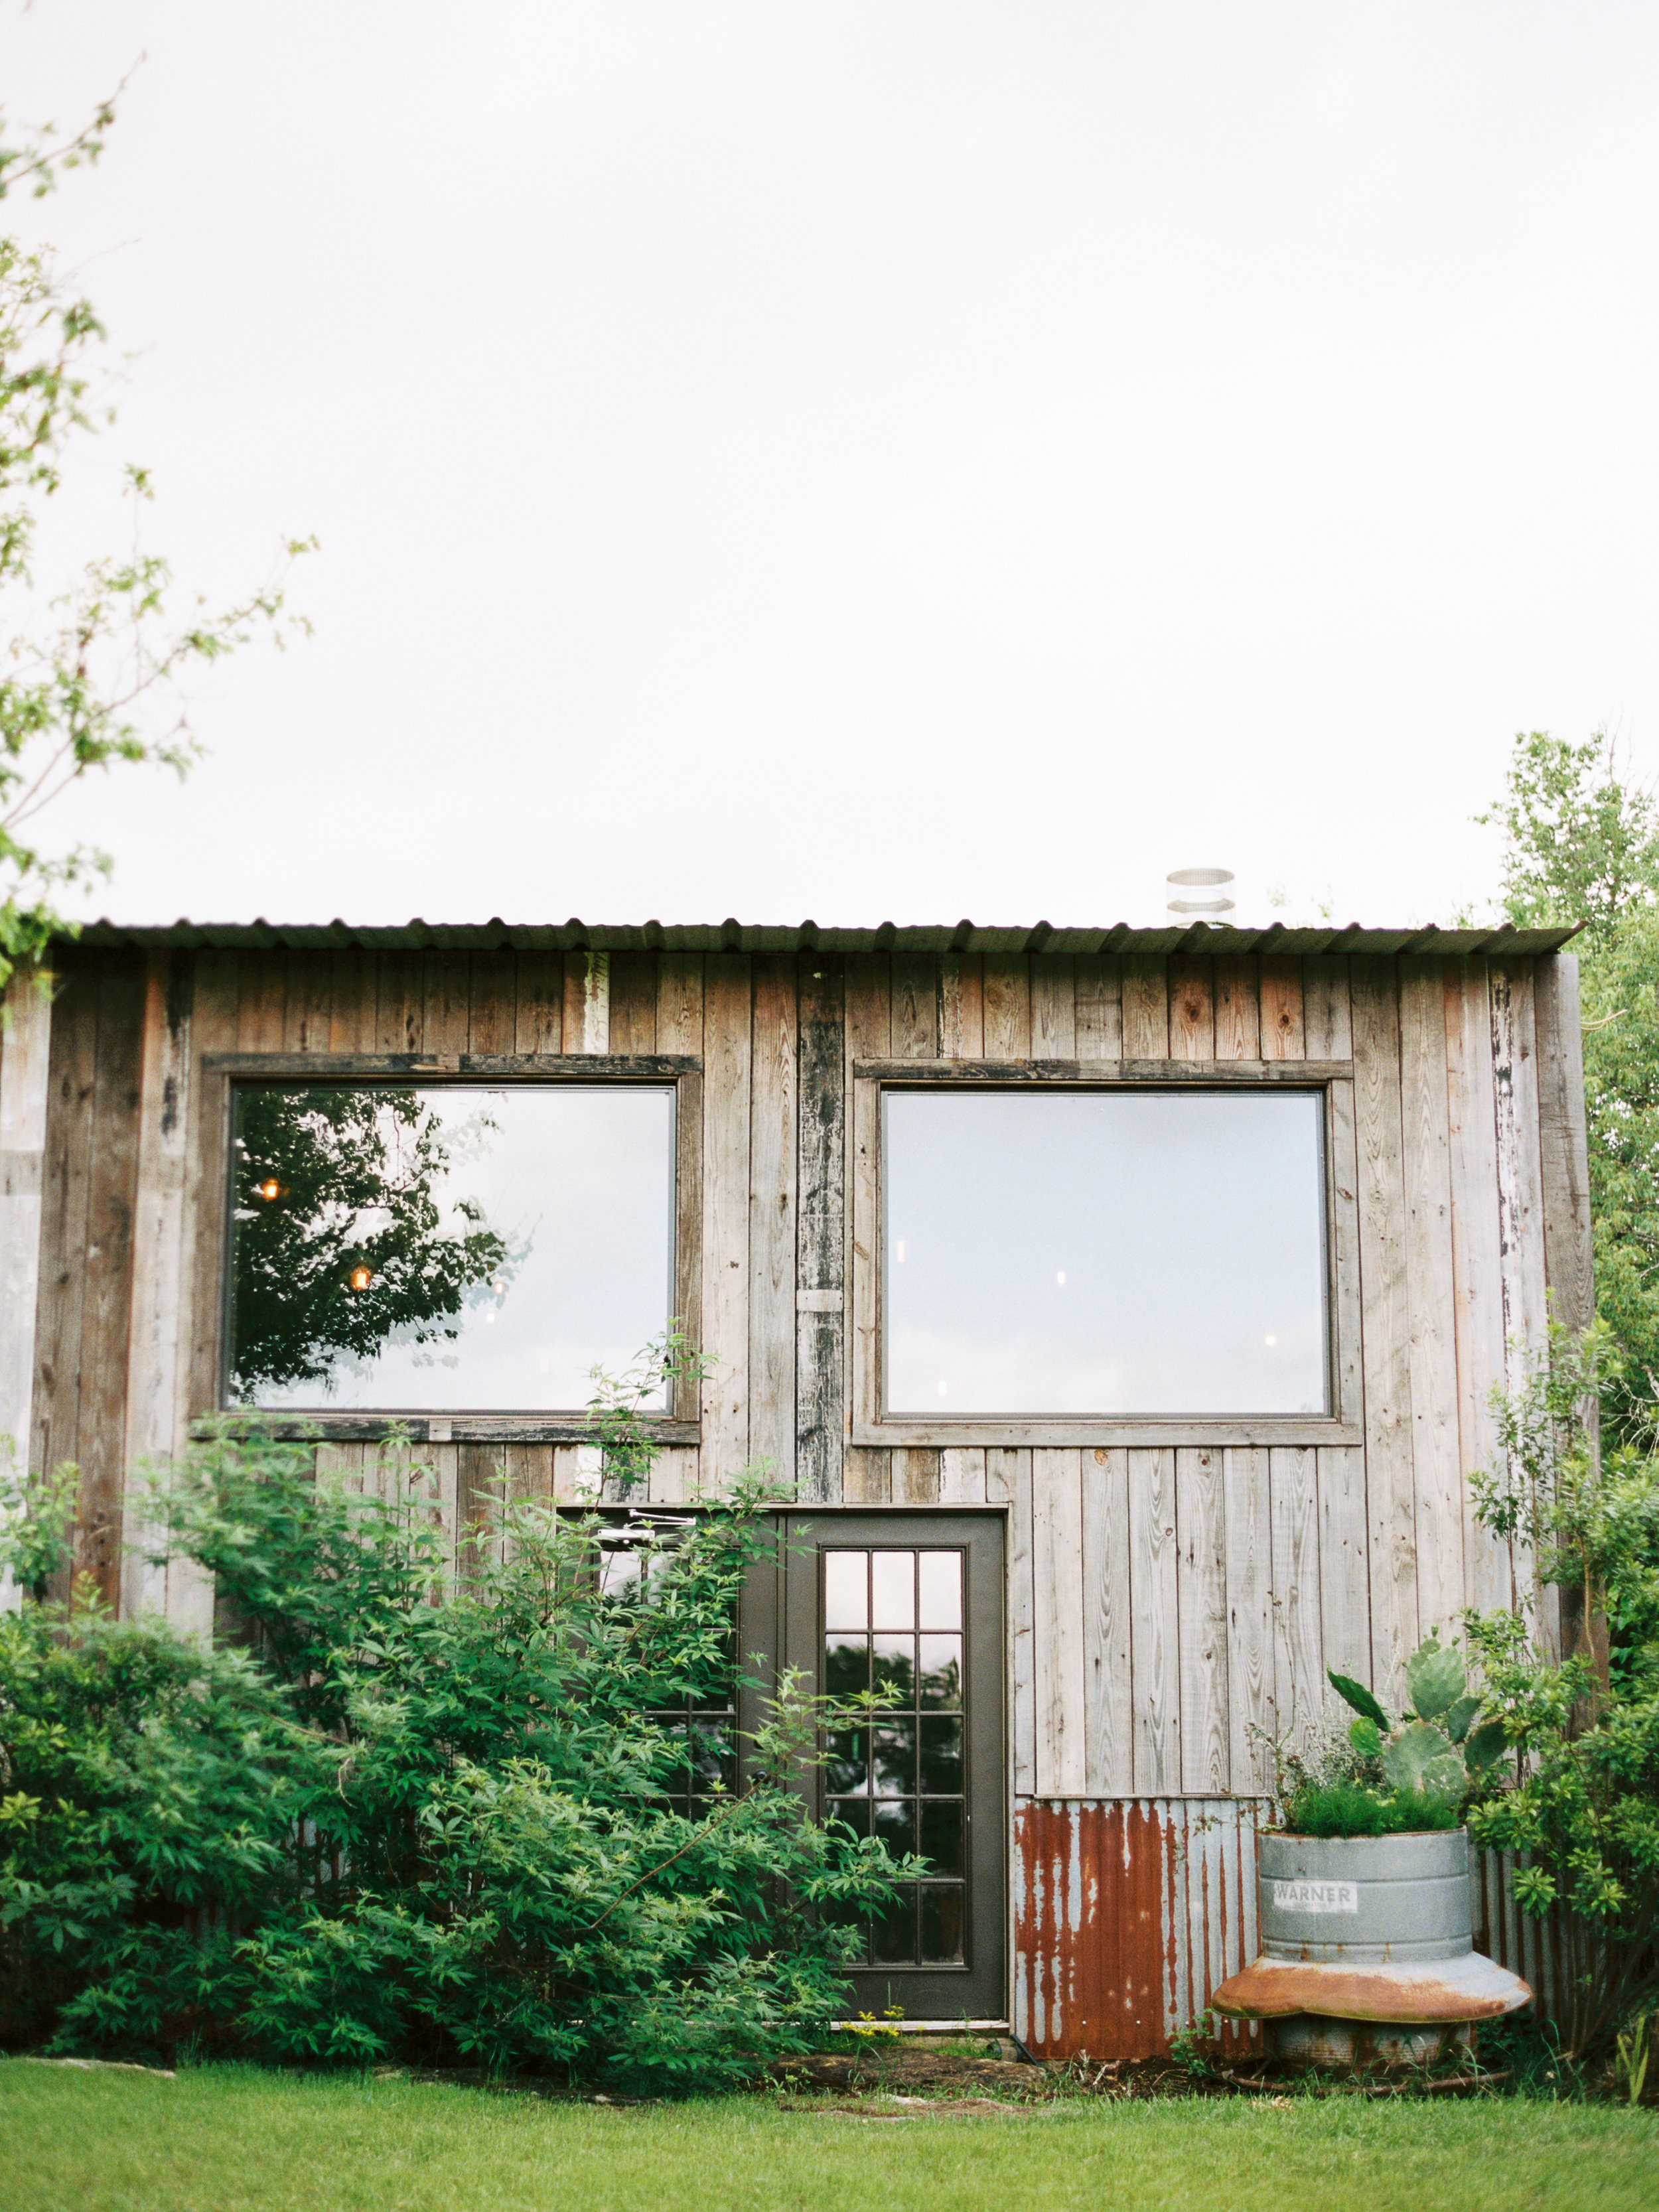 the-creek-haus-desintation-weekend-lodging-wedding-venue-austin-texas-hill-country